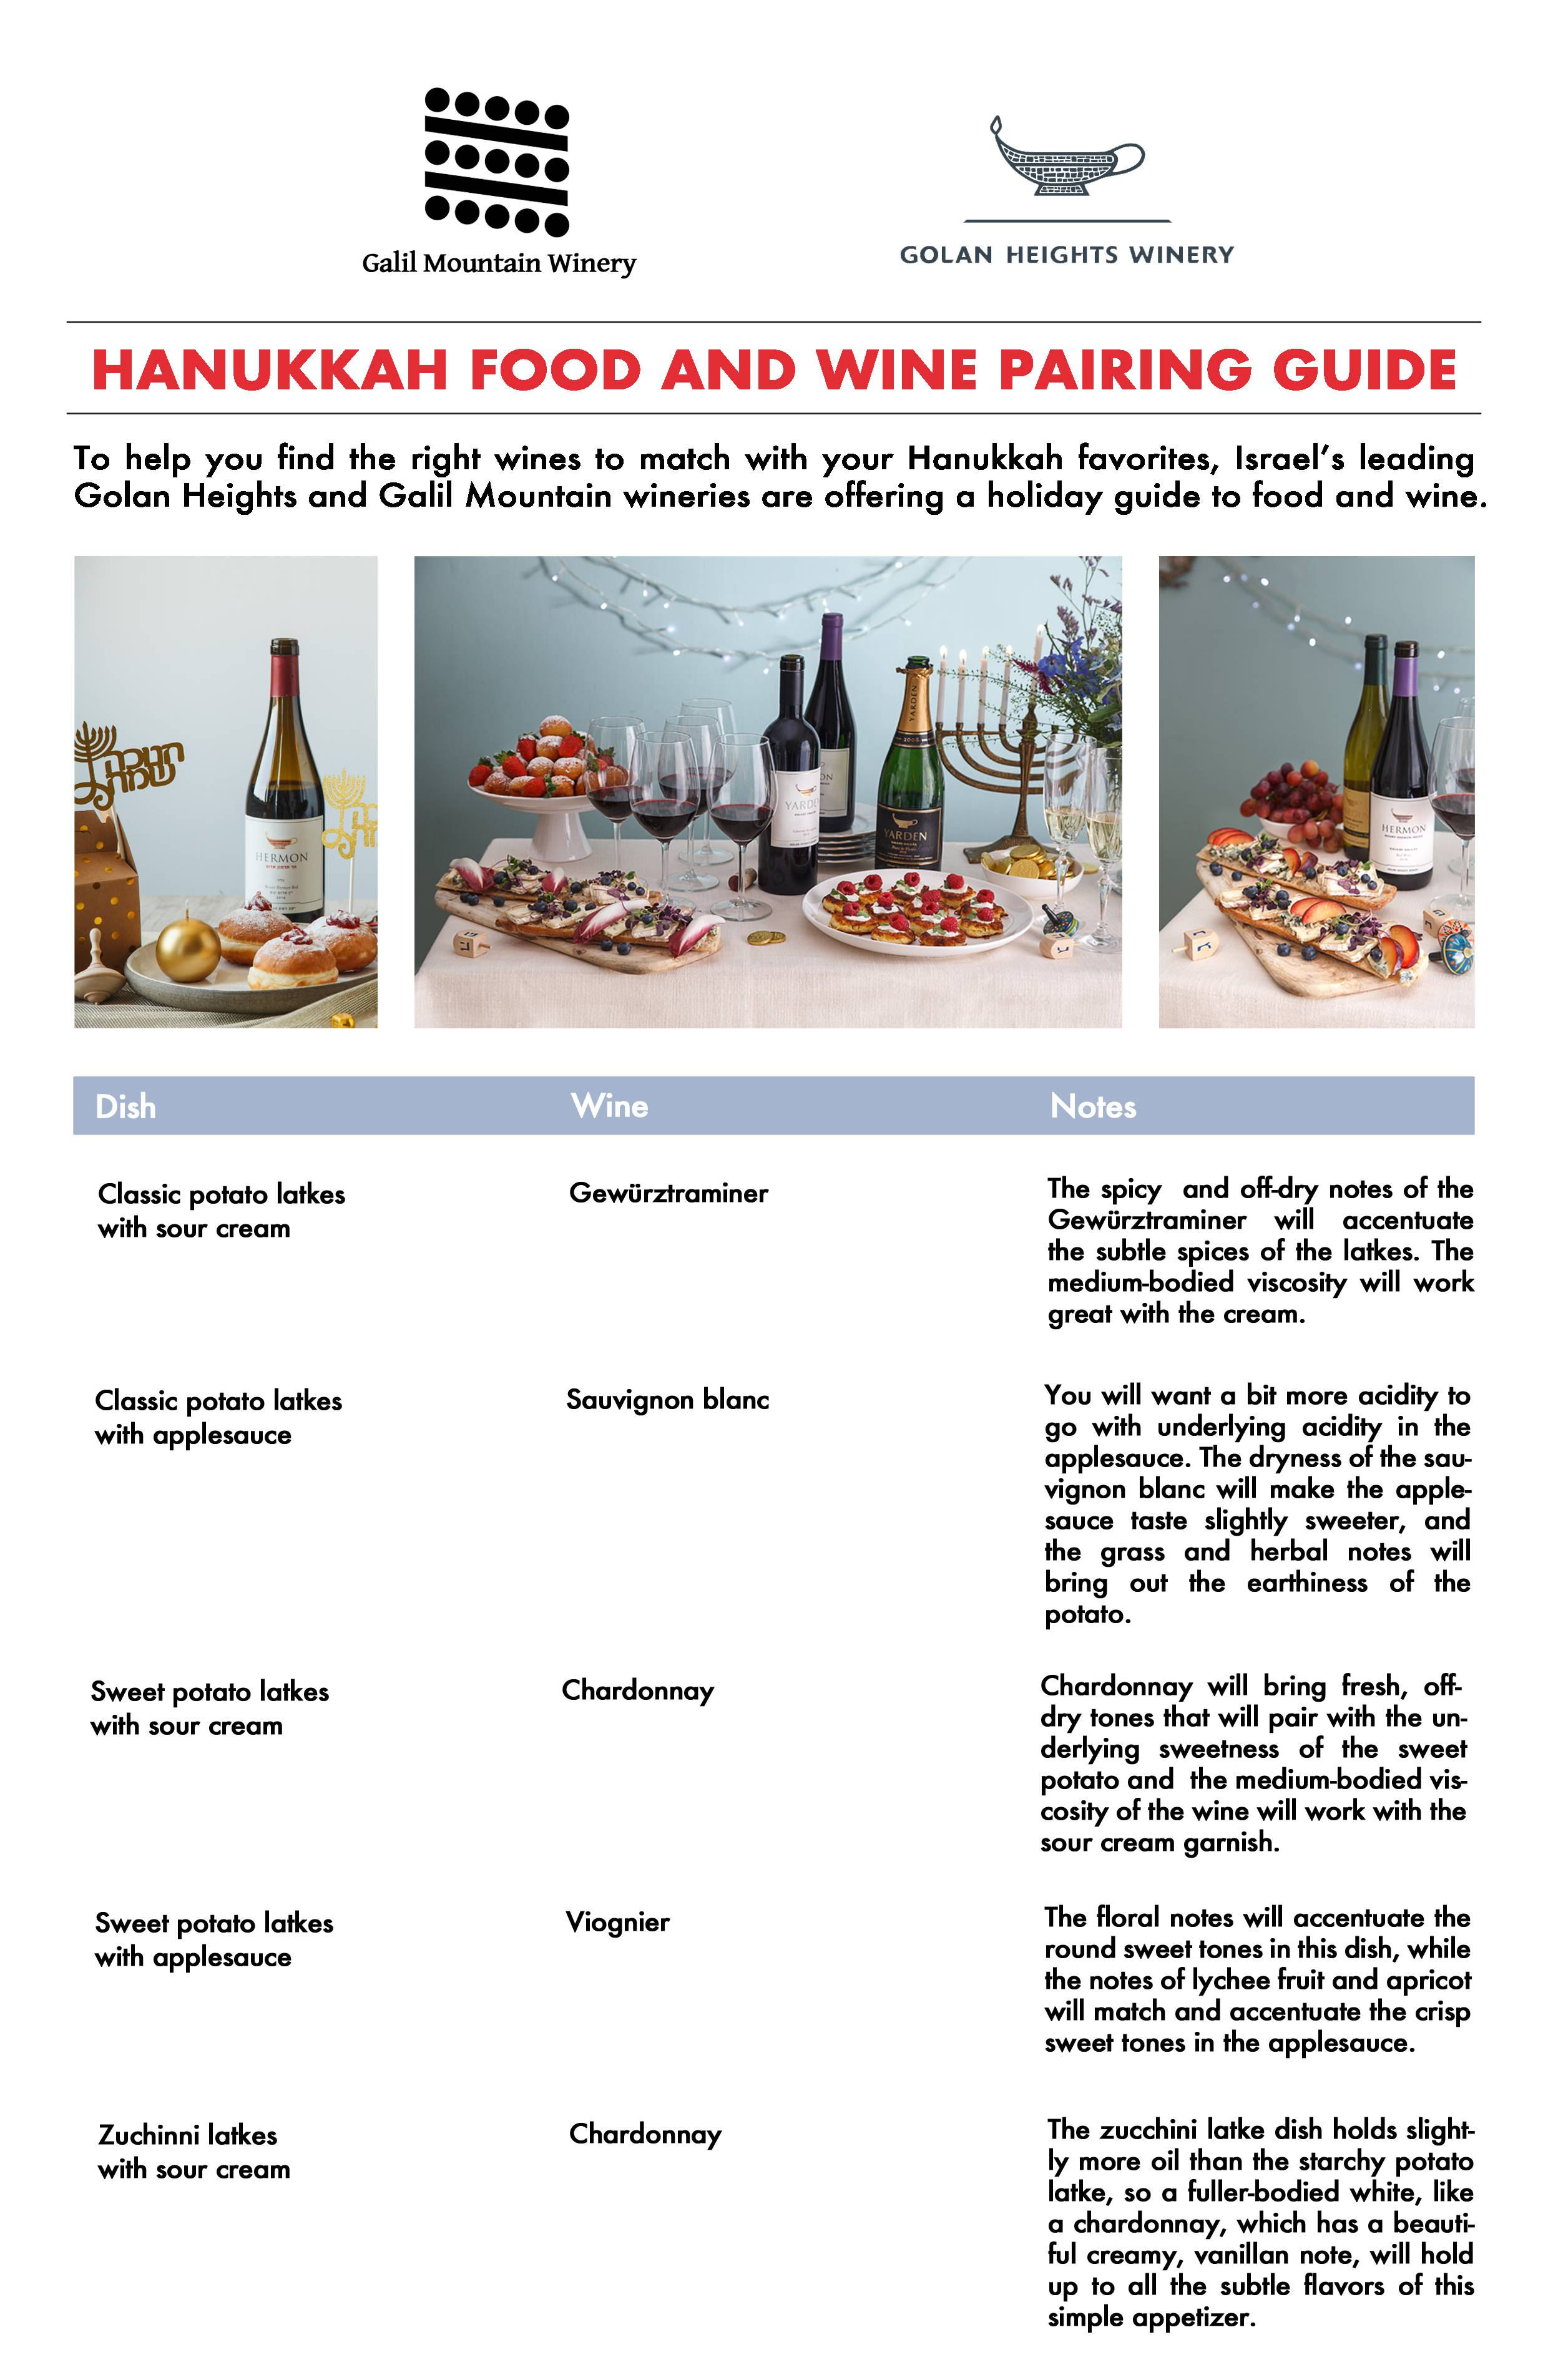 Hanukkah-Food-Wine-2017-v8-1